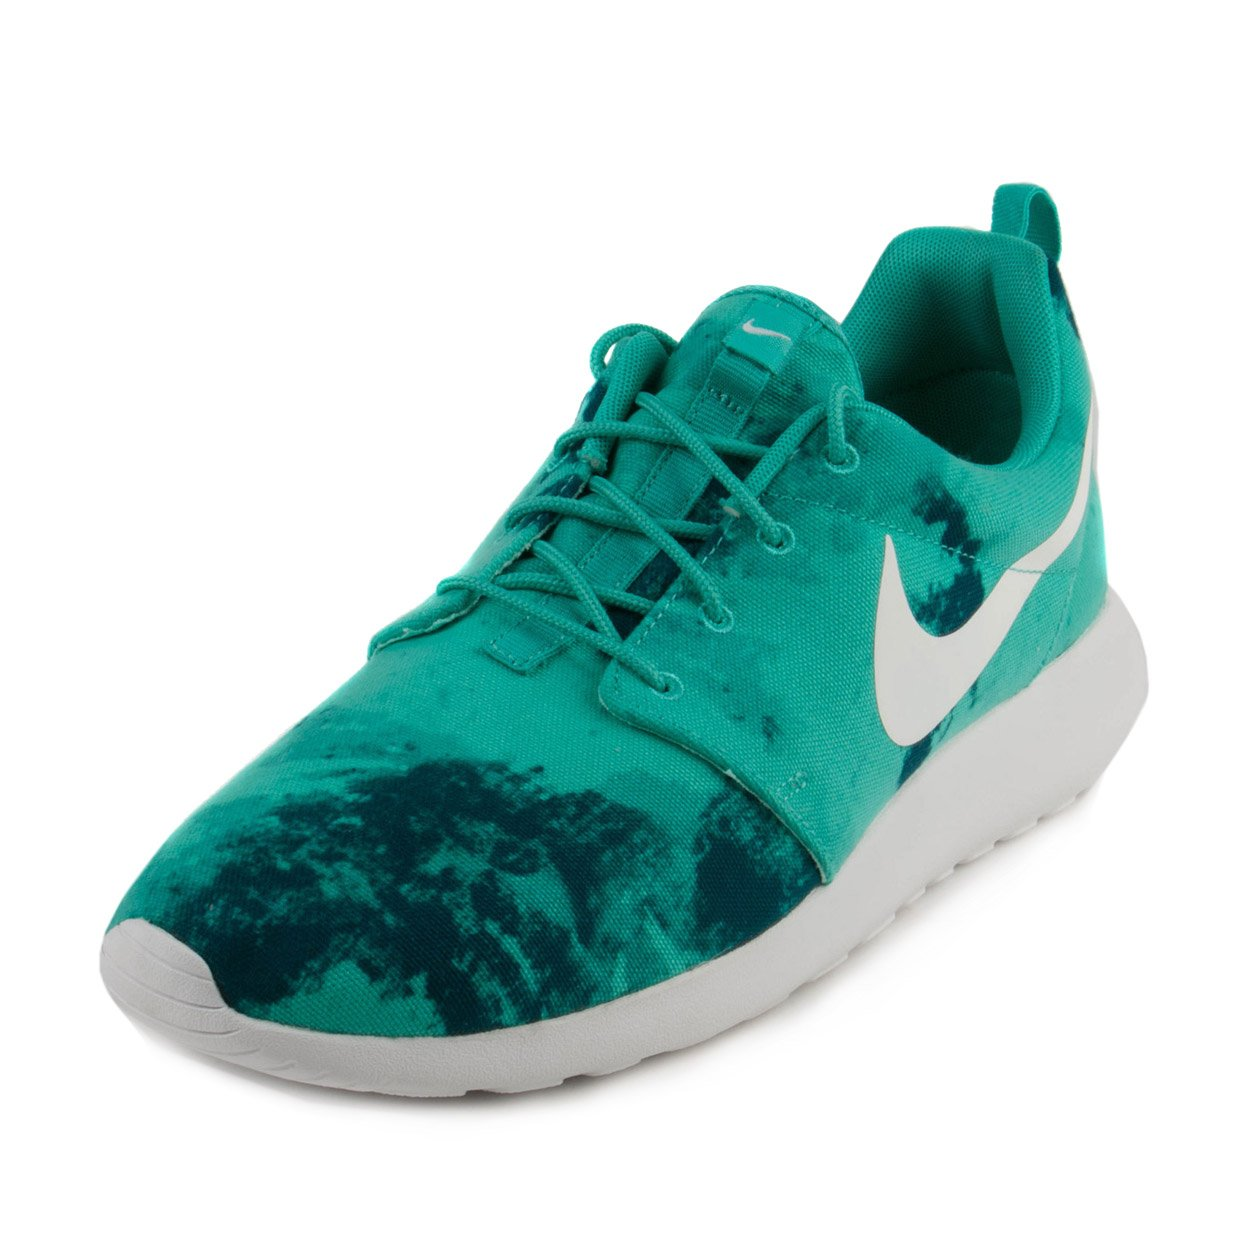 NIKE Mens Air Zoom Structure 19 Running Shoes B00NPECNSA 13 D(M) US|Light Retro/White-teal